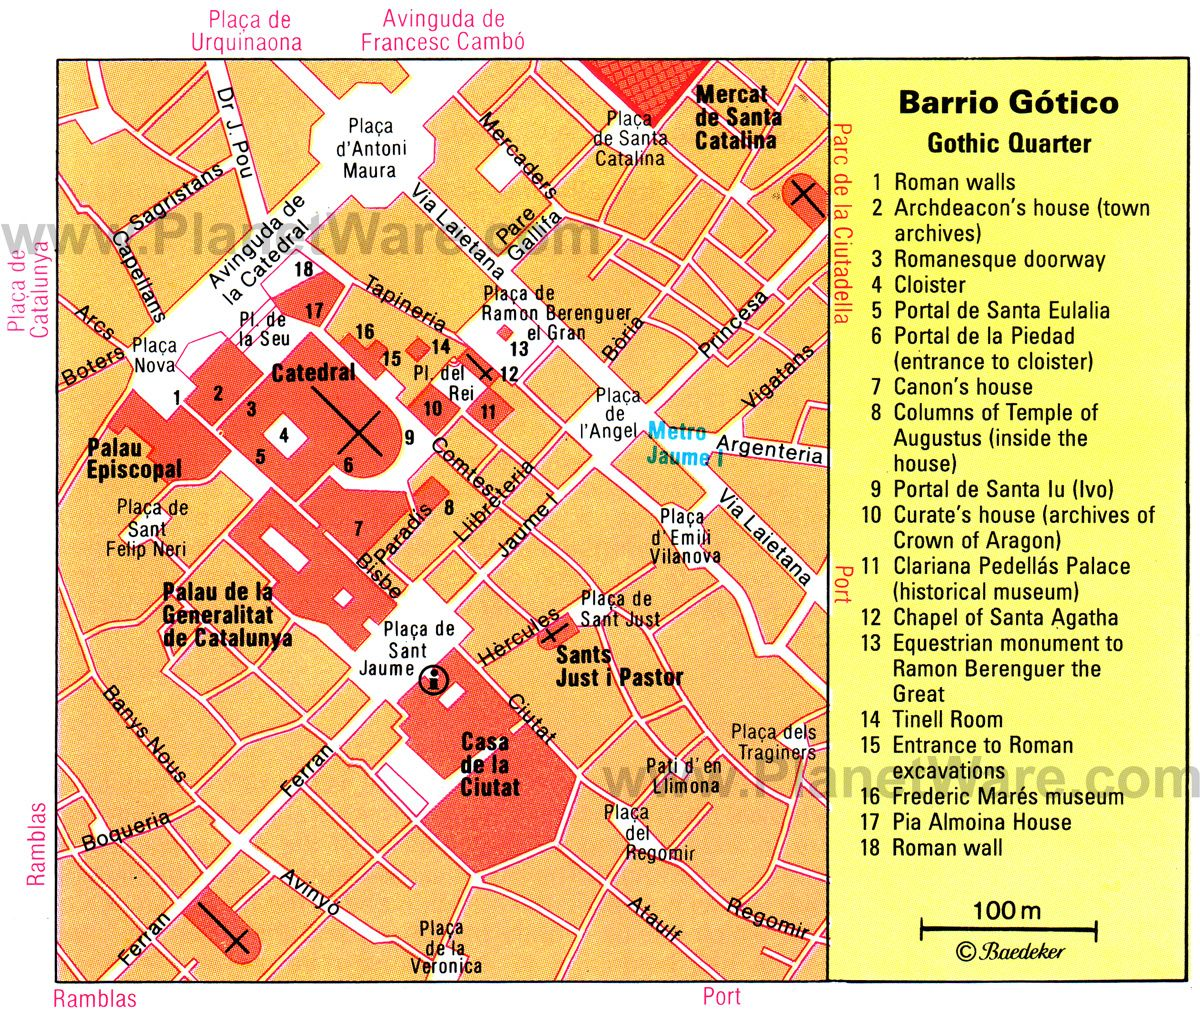 barcelona gothic quarter map tourist attractions httpwwwplanetwarecombarcelonagothic quarter e cat bargothtm